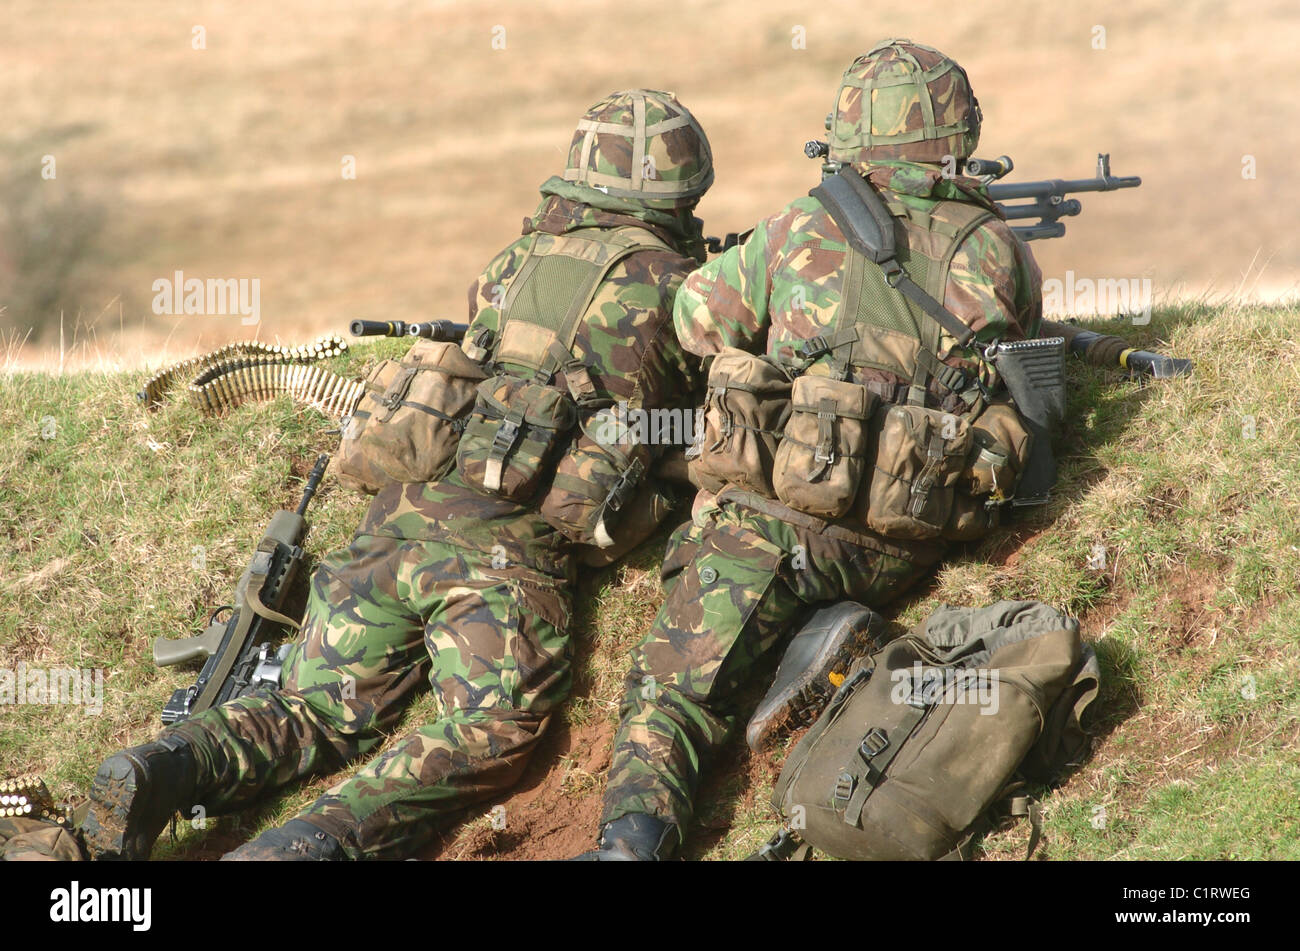 British Army soldiers participate in sustained fire training. - Stock Image